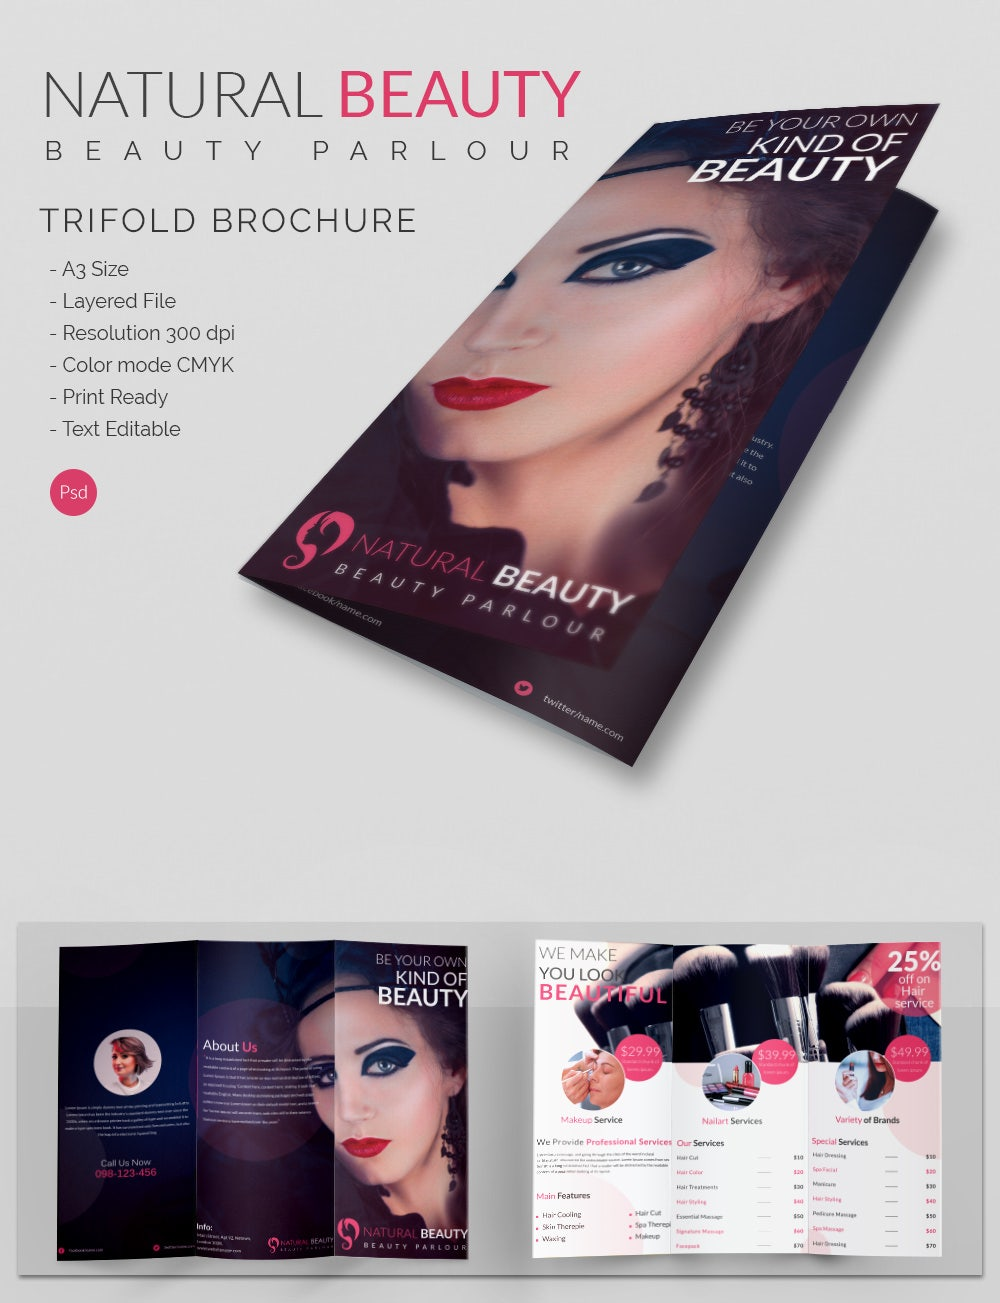 Natural Beauty Parlour Tri Fold Brochure